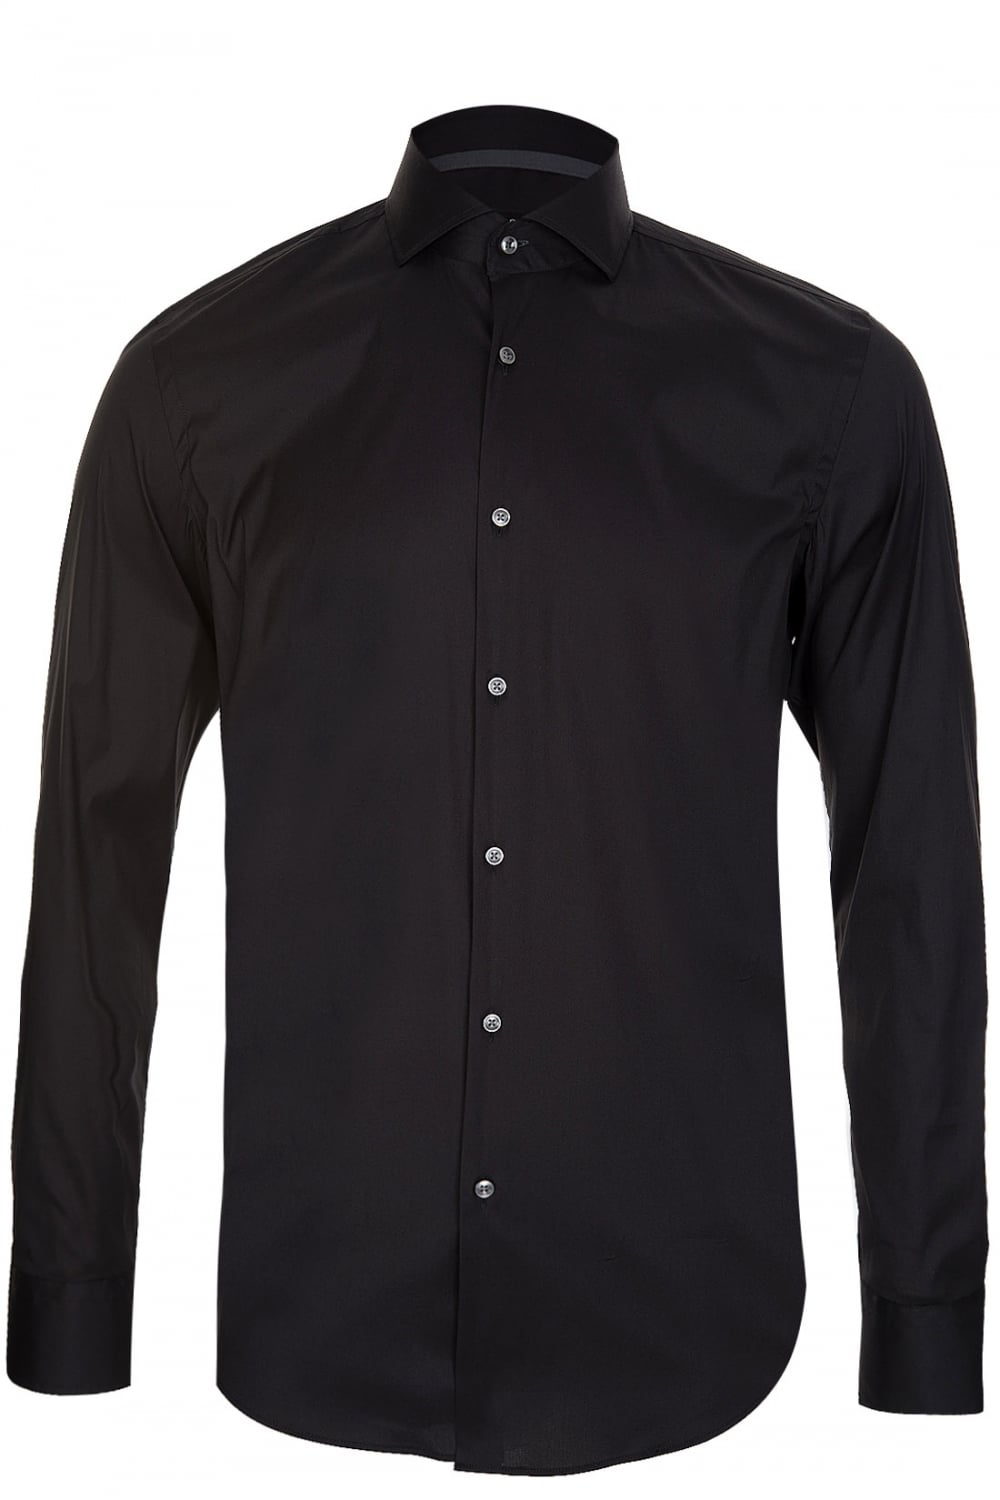 hugo boss hugo boss jery shirt black hugo boss from circle fashion uk. Black Bedroom Furniture Sets. Home Design Ideas